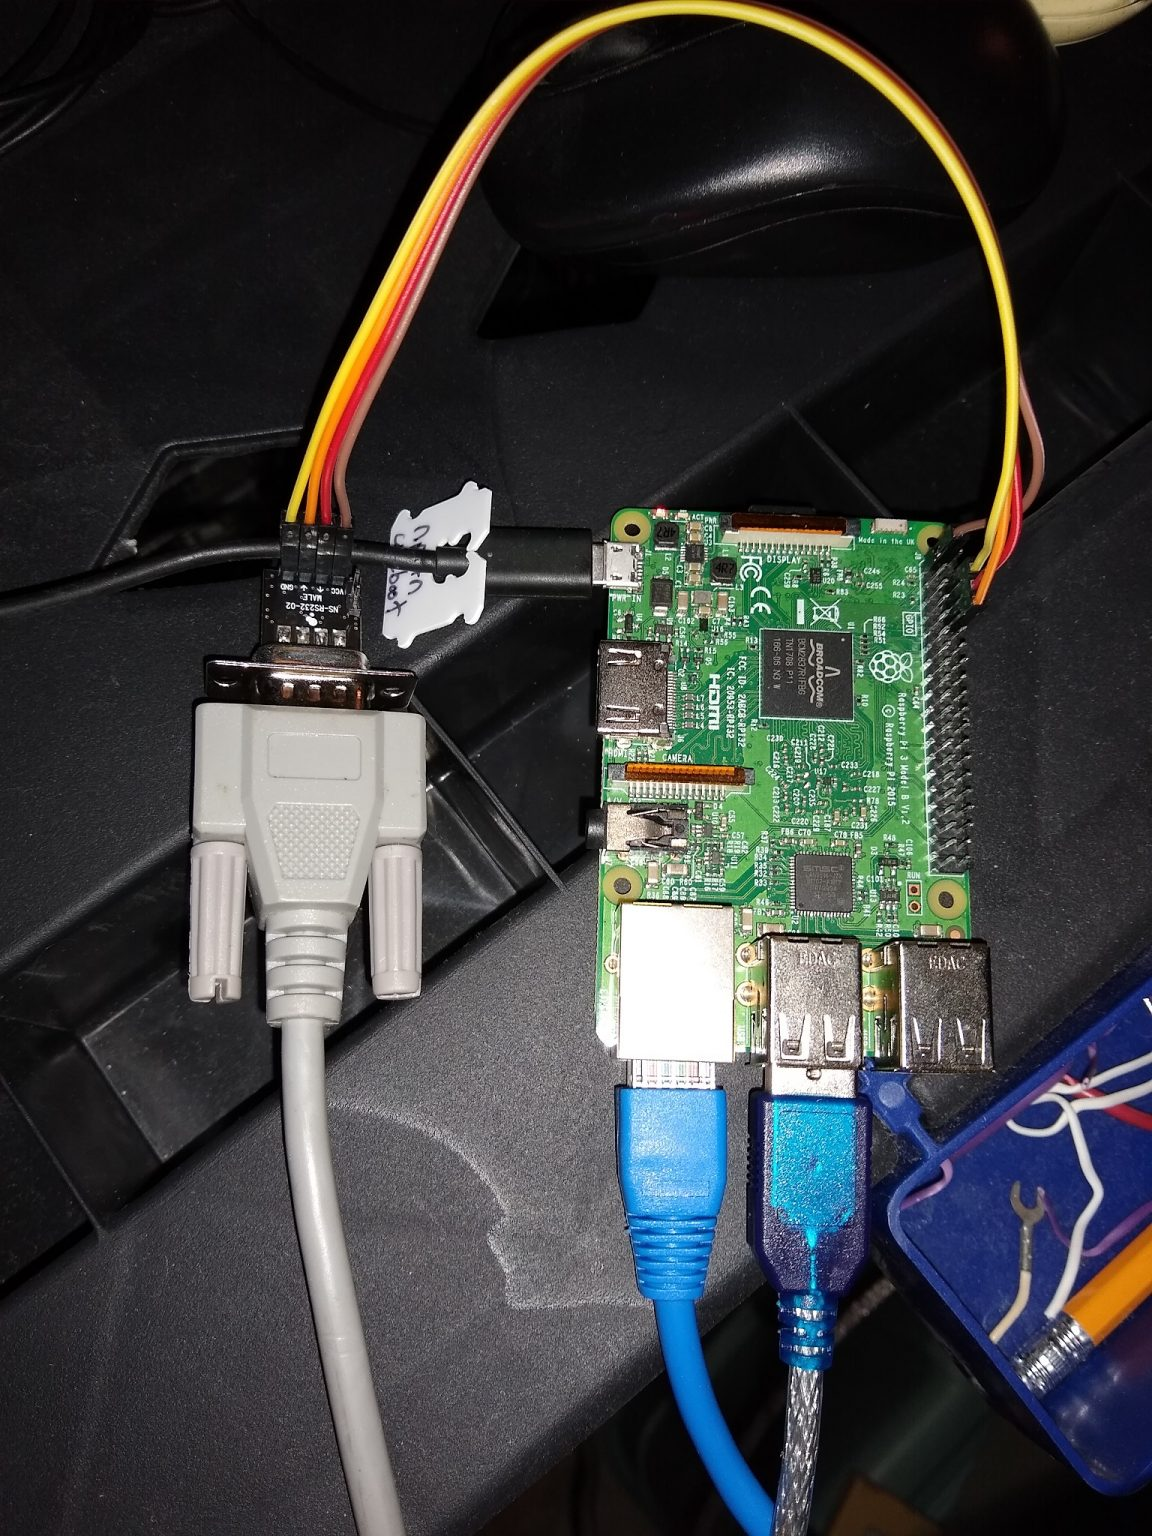 The convertor connected to the RPi.